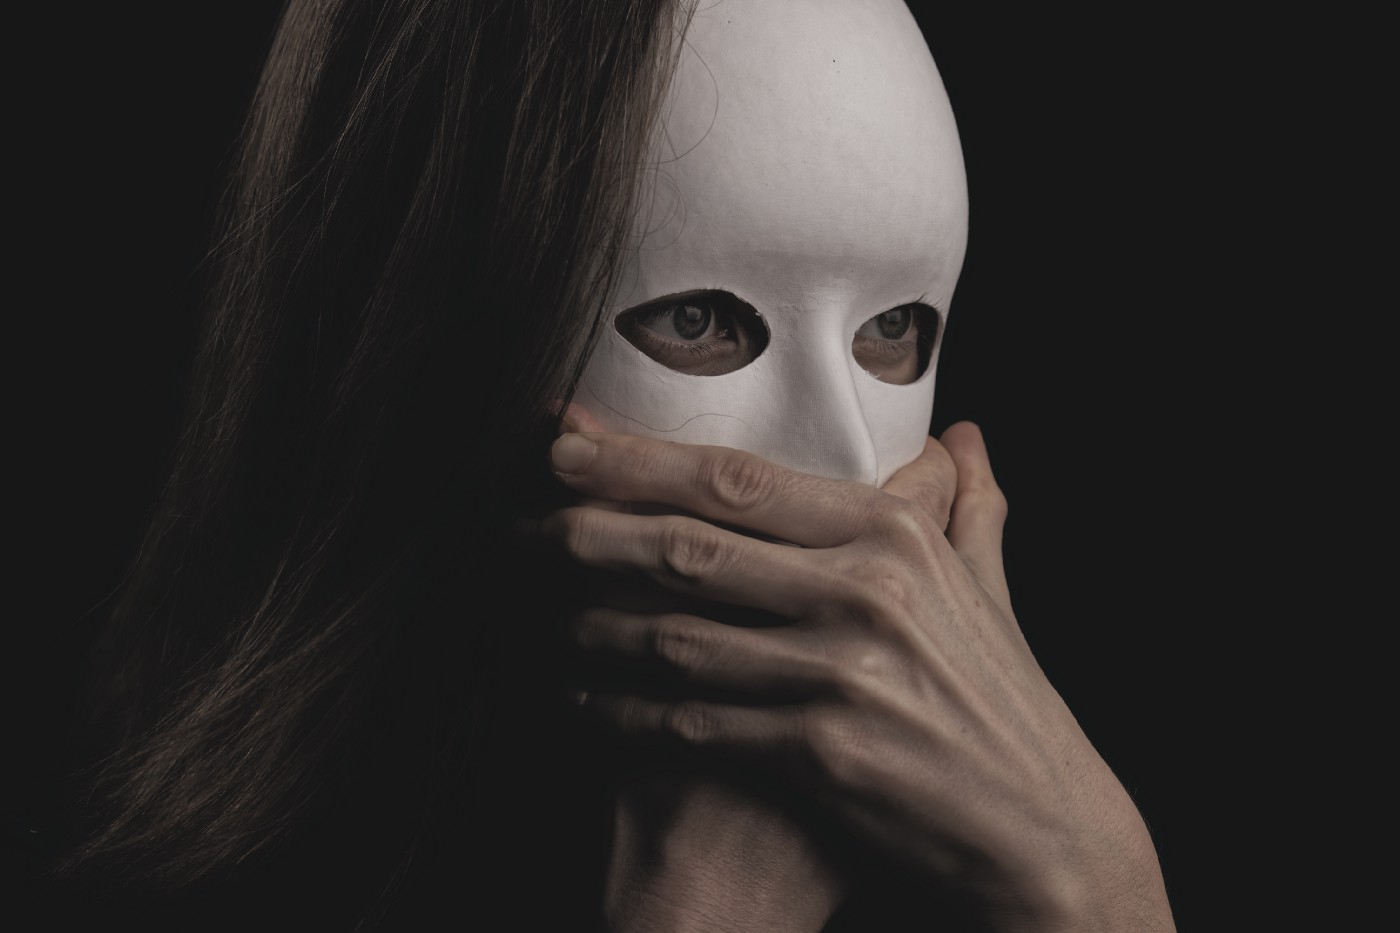 A young brunette woman with long hair is wearing a white cardboard mask, hiding her entire face. But her eyes show through cut out eye holes. They are staring widely at something off-camera. Two unidentifiable hands are grasping where her mouth ought to be, stopping her from speaking. Allodoxaphobia: the fear of hearing others' opinions. My phobia stopped me from speaking out against child abuse. I was unable to confront an abusive parent in public. What would you have done in my situation?